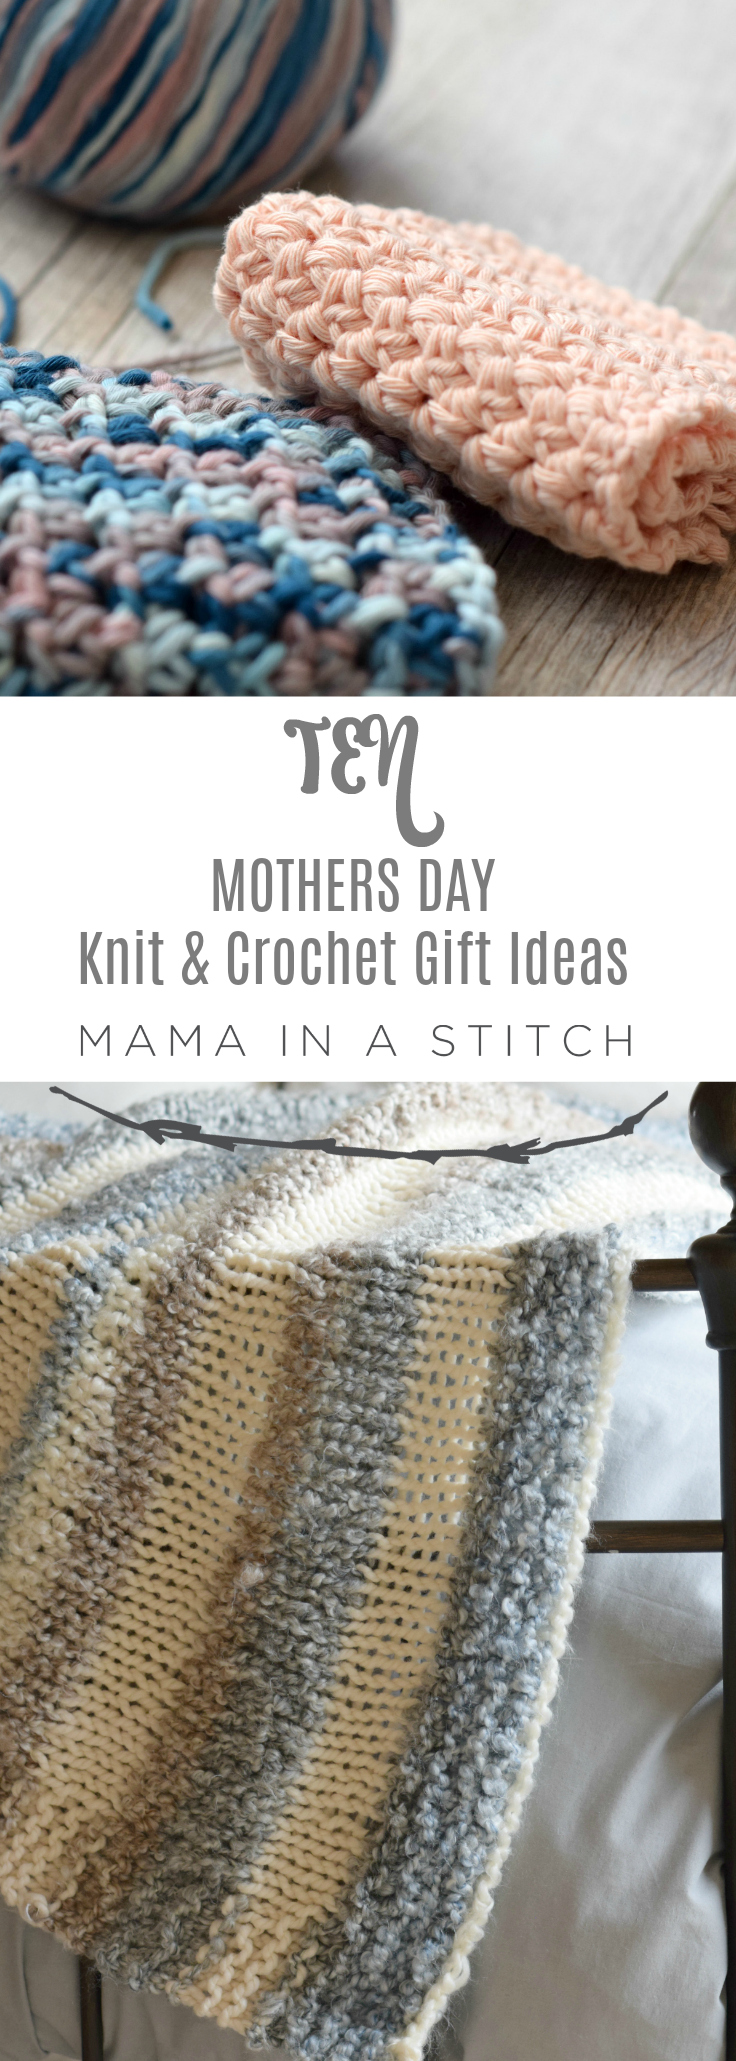 Quick Mothers Day Knit And Crochet Gift Ideas Mama In A Stitch